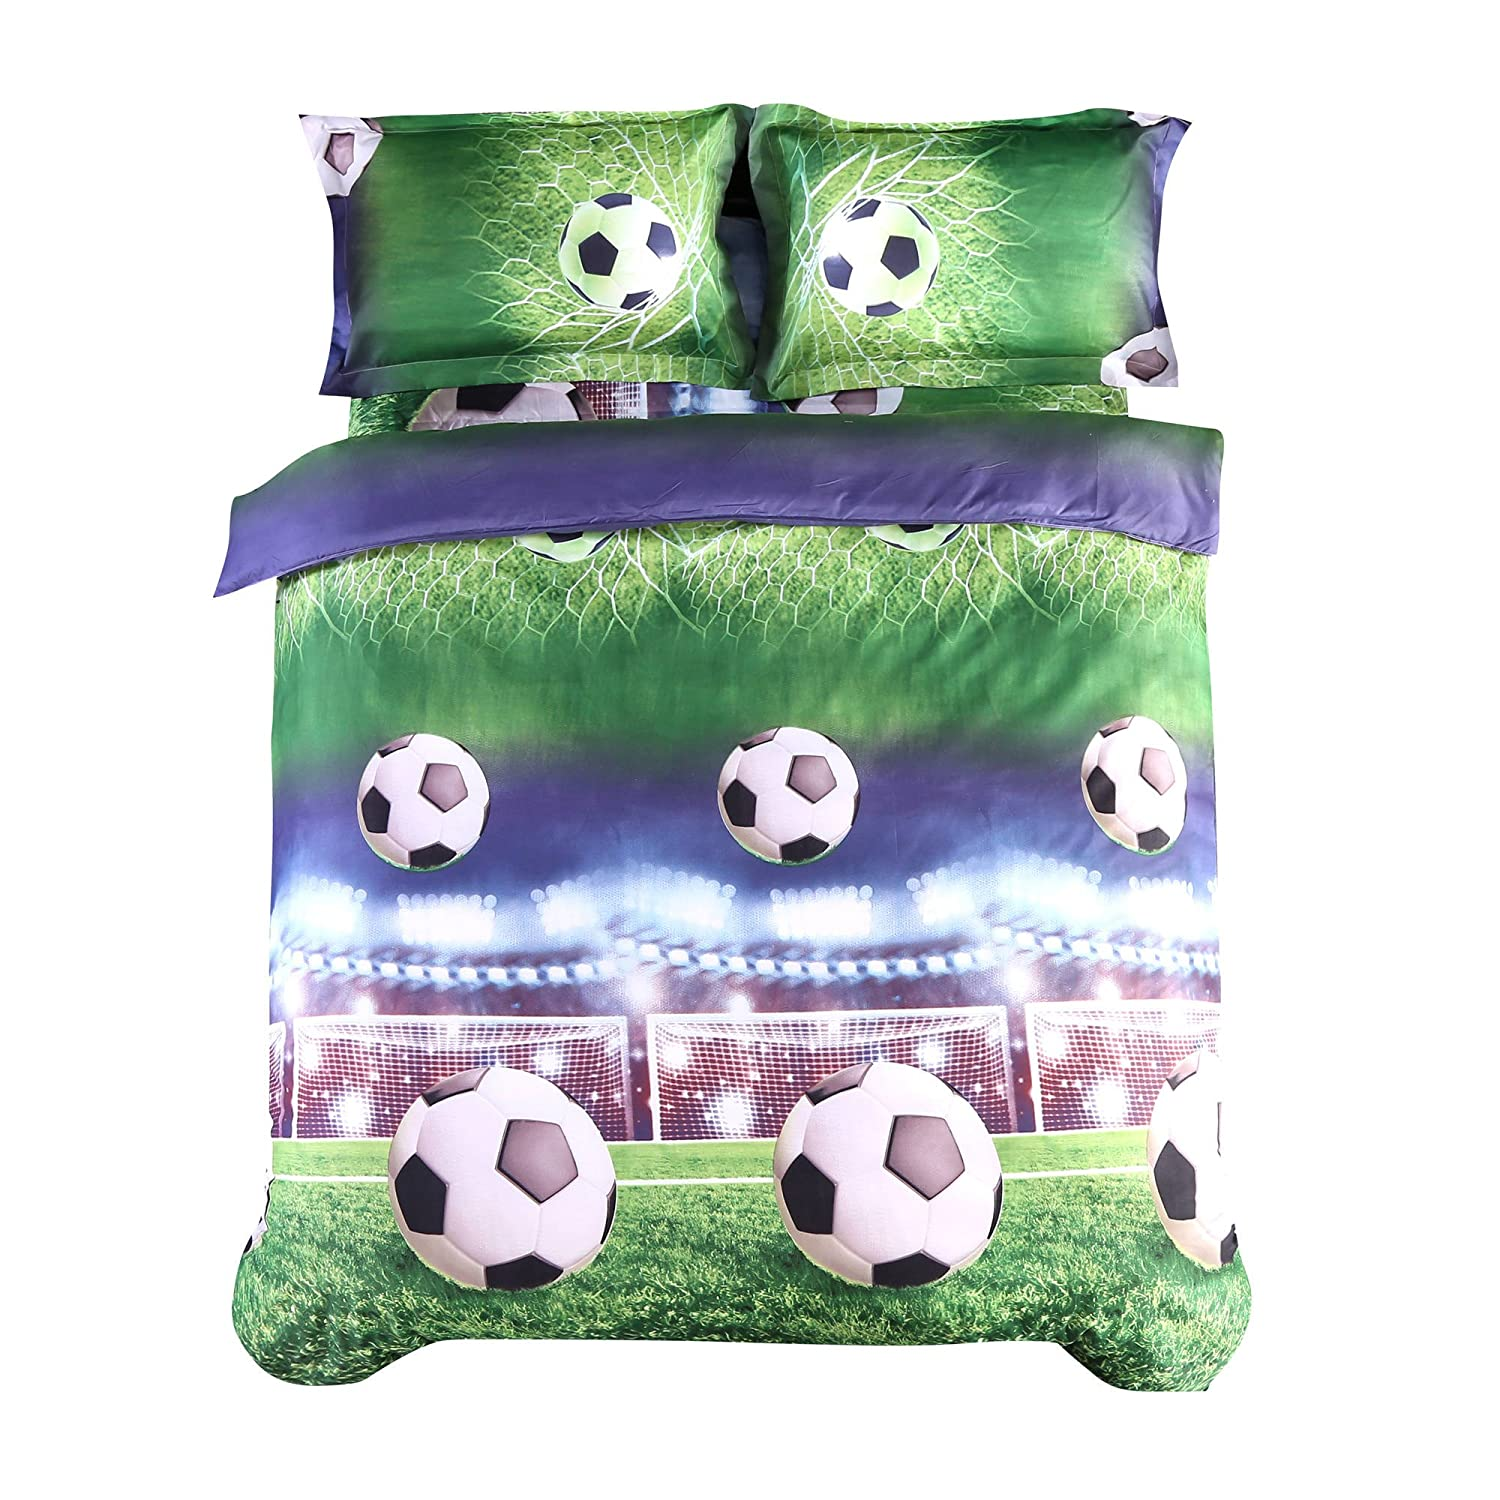 Wowelife 3D Soccer Bedding Set Queen Green Playground Boys Football Duvet Cover Set 4 Piece with Duvet Cover, Flat Sheet and Pillow Cases(No Comforter Included)(Soccer-4 Piece, Queen)